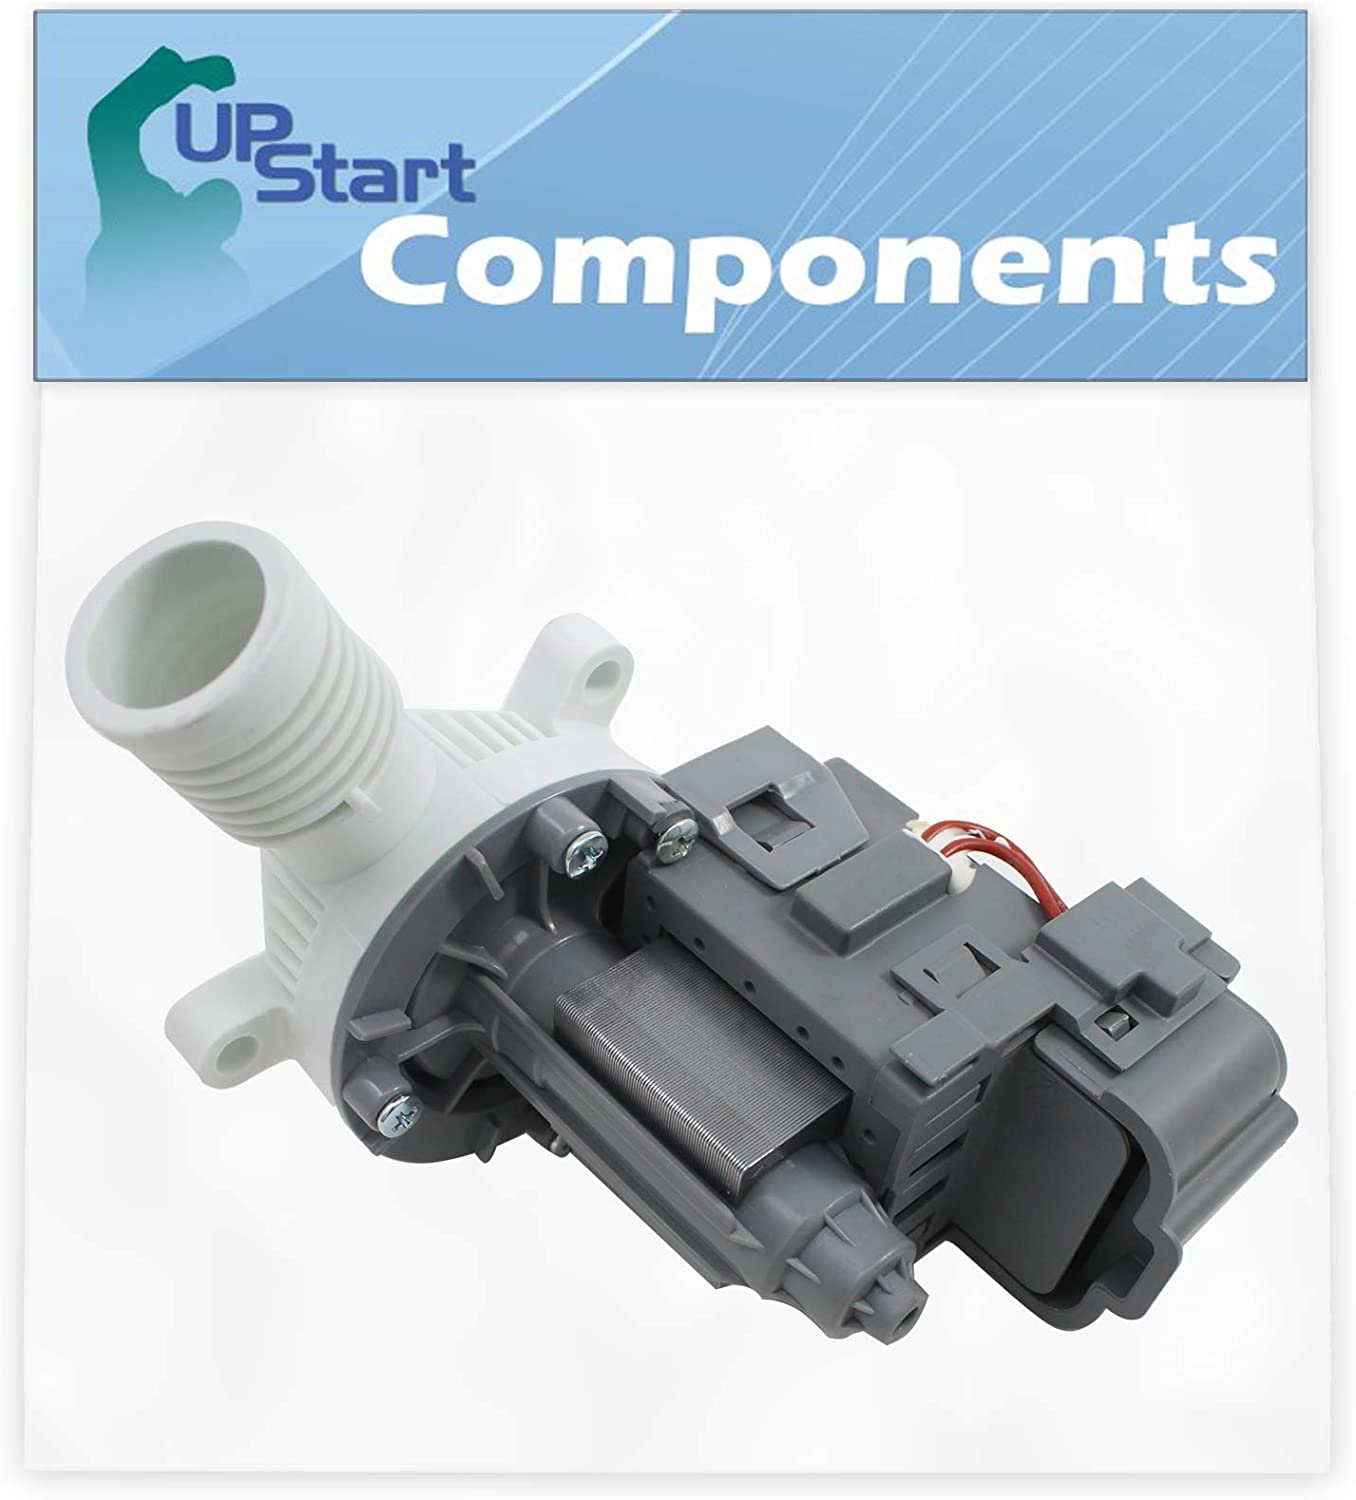 W10276397 Washer Drain Pump Replacement for Whirlpool WTW4800XQ2 - Compatible with WPW10276397 Washing Machine Water Pump